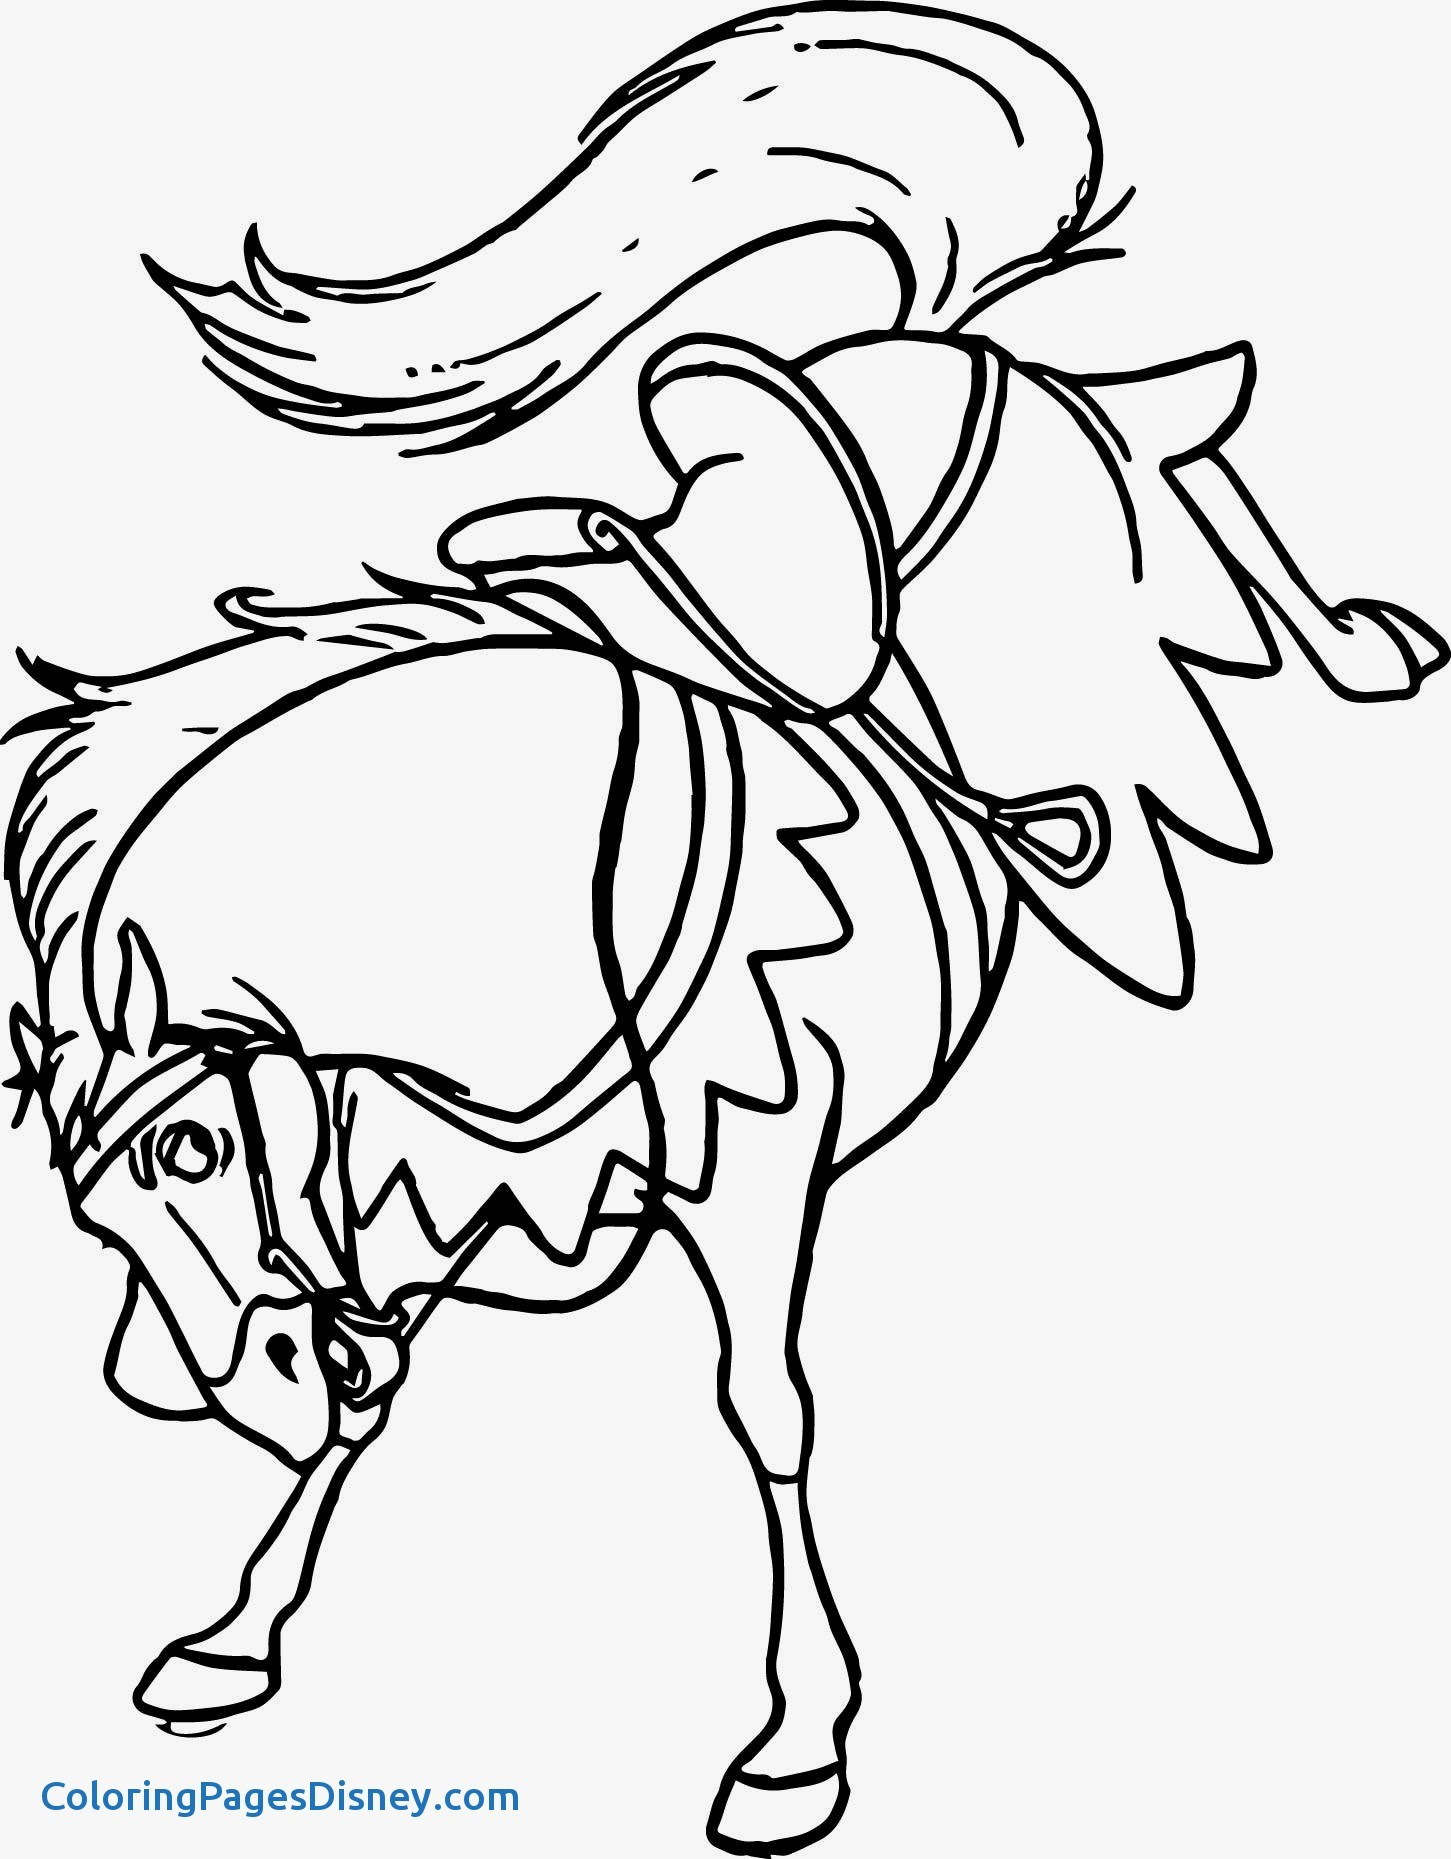 1451x1859 Luxury The Hunchback Of Notre Dame Coloring Pages